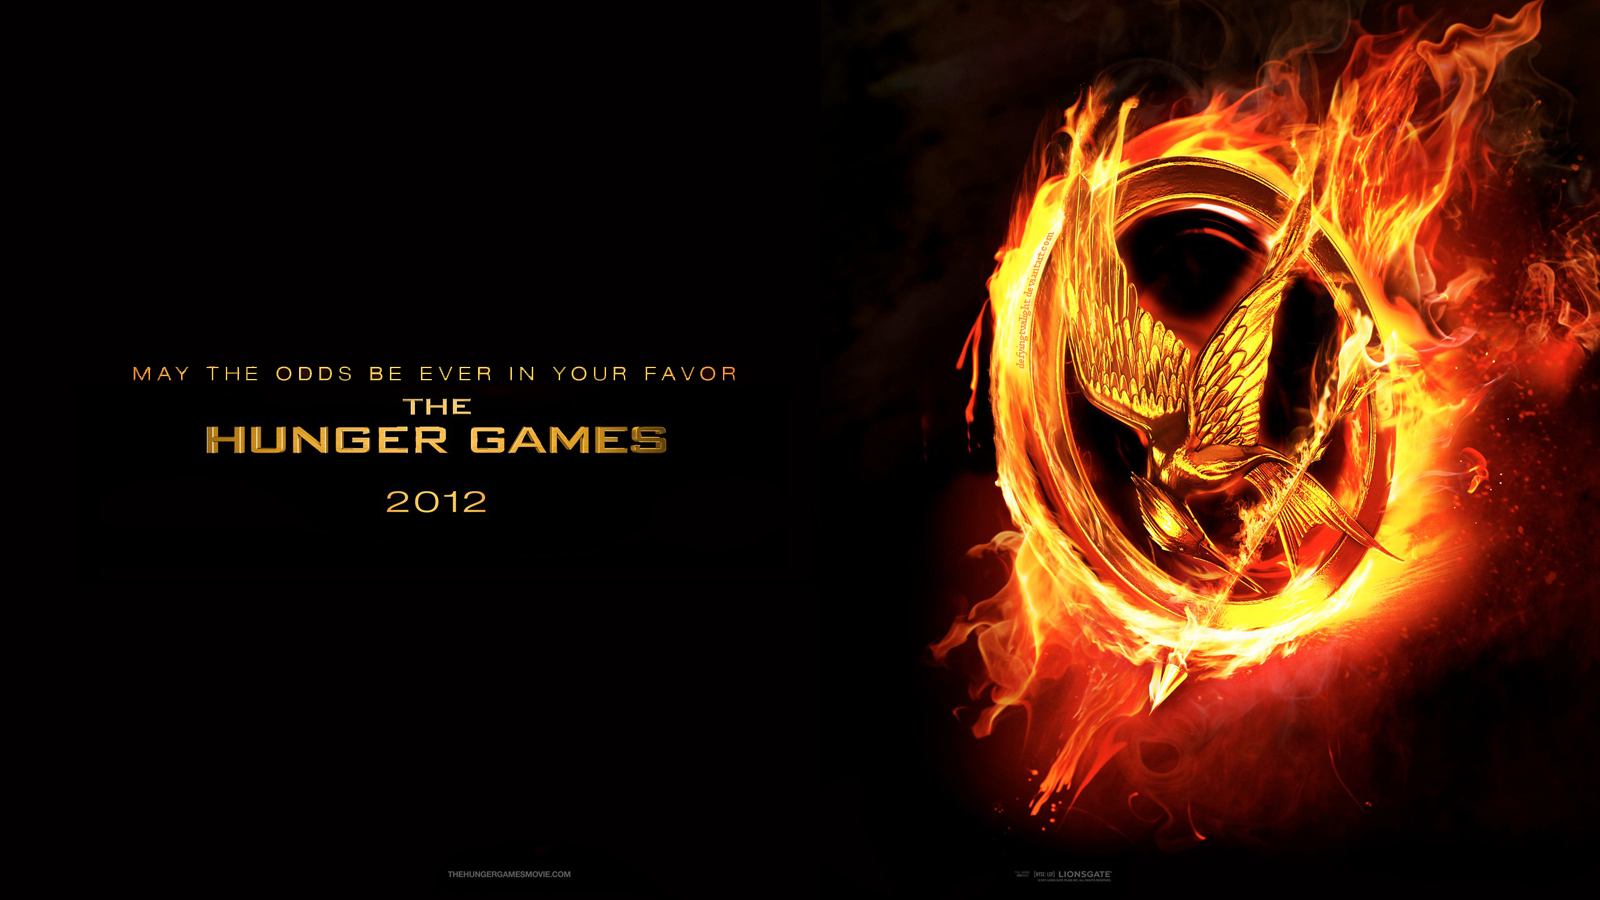 The Hunger Games Movie Poster Wallpapers   The Hunger Games Wallpaper 1600x900